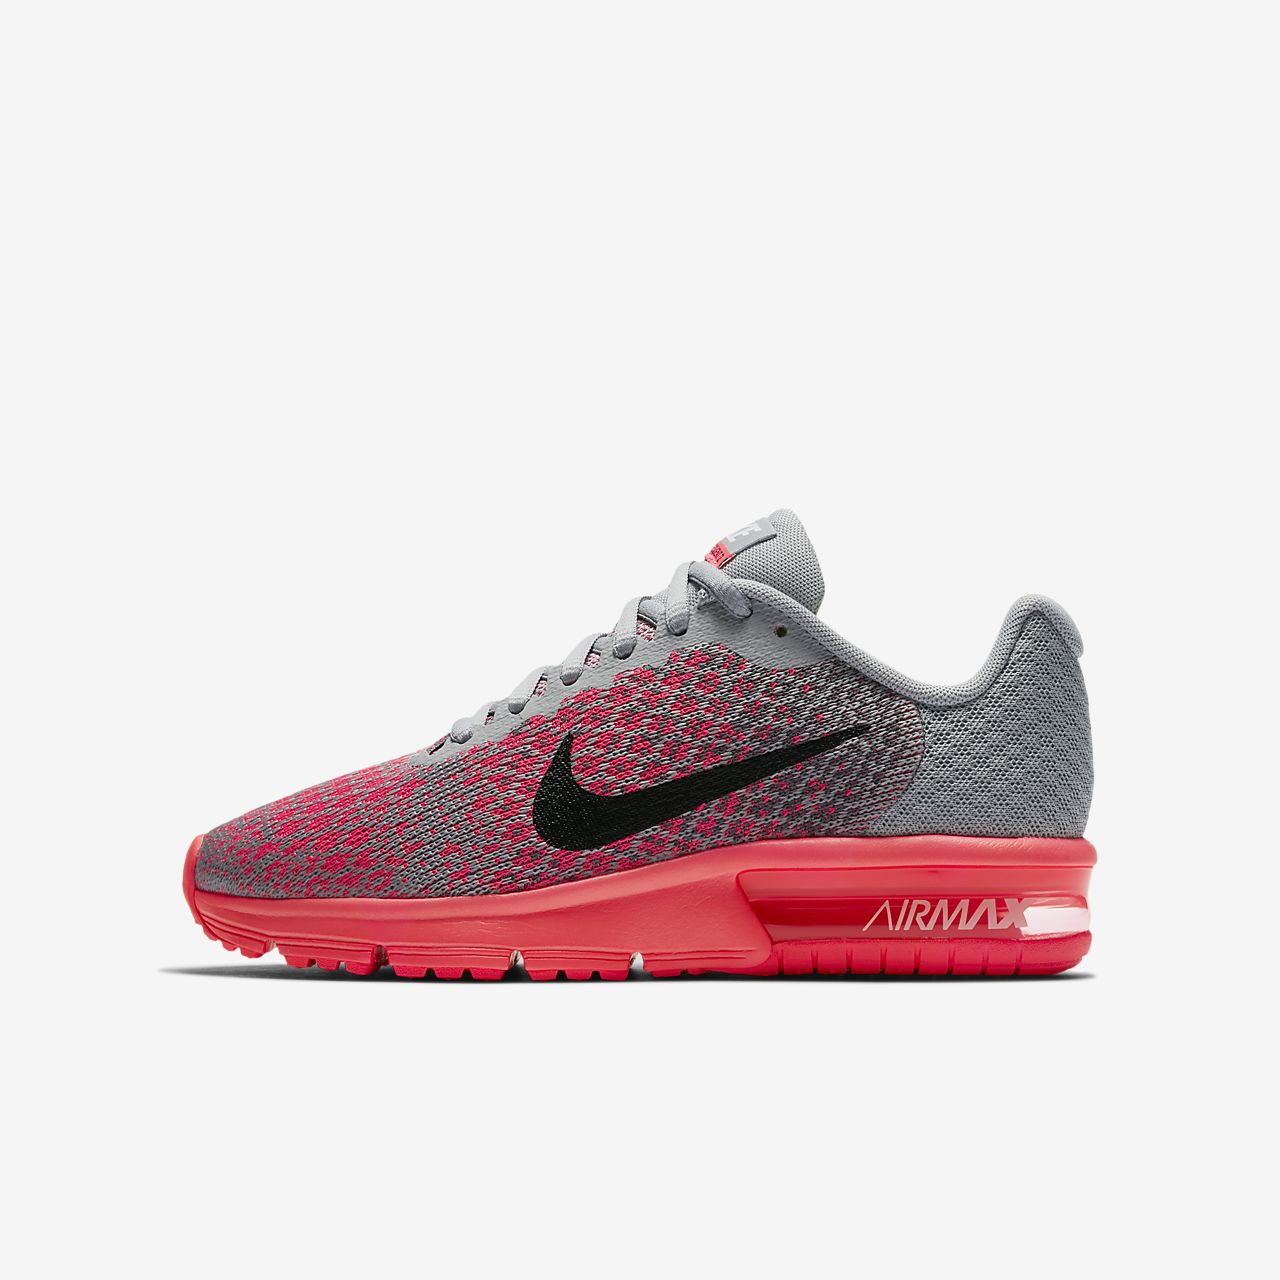 668c36780af Nike Air Max Sequent 2 Zapatillas de running - Niño a. Nike.com ES